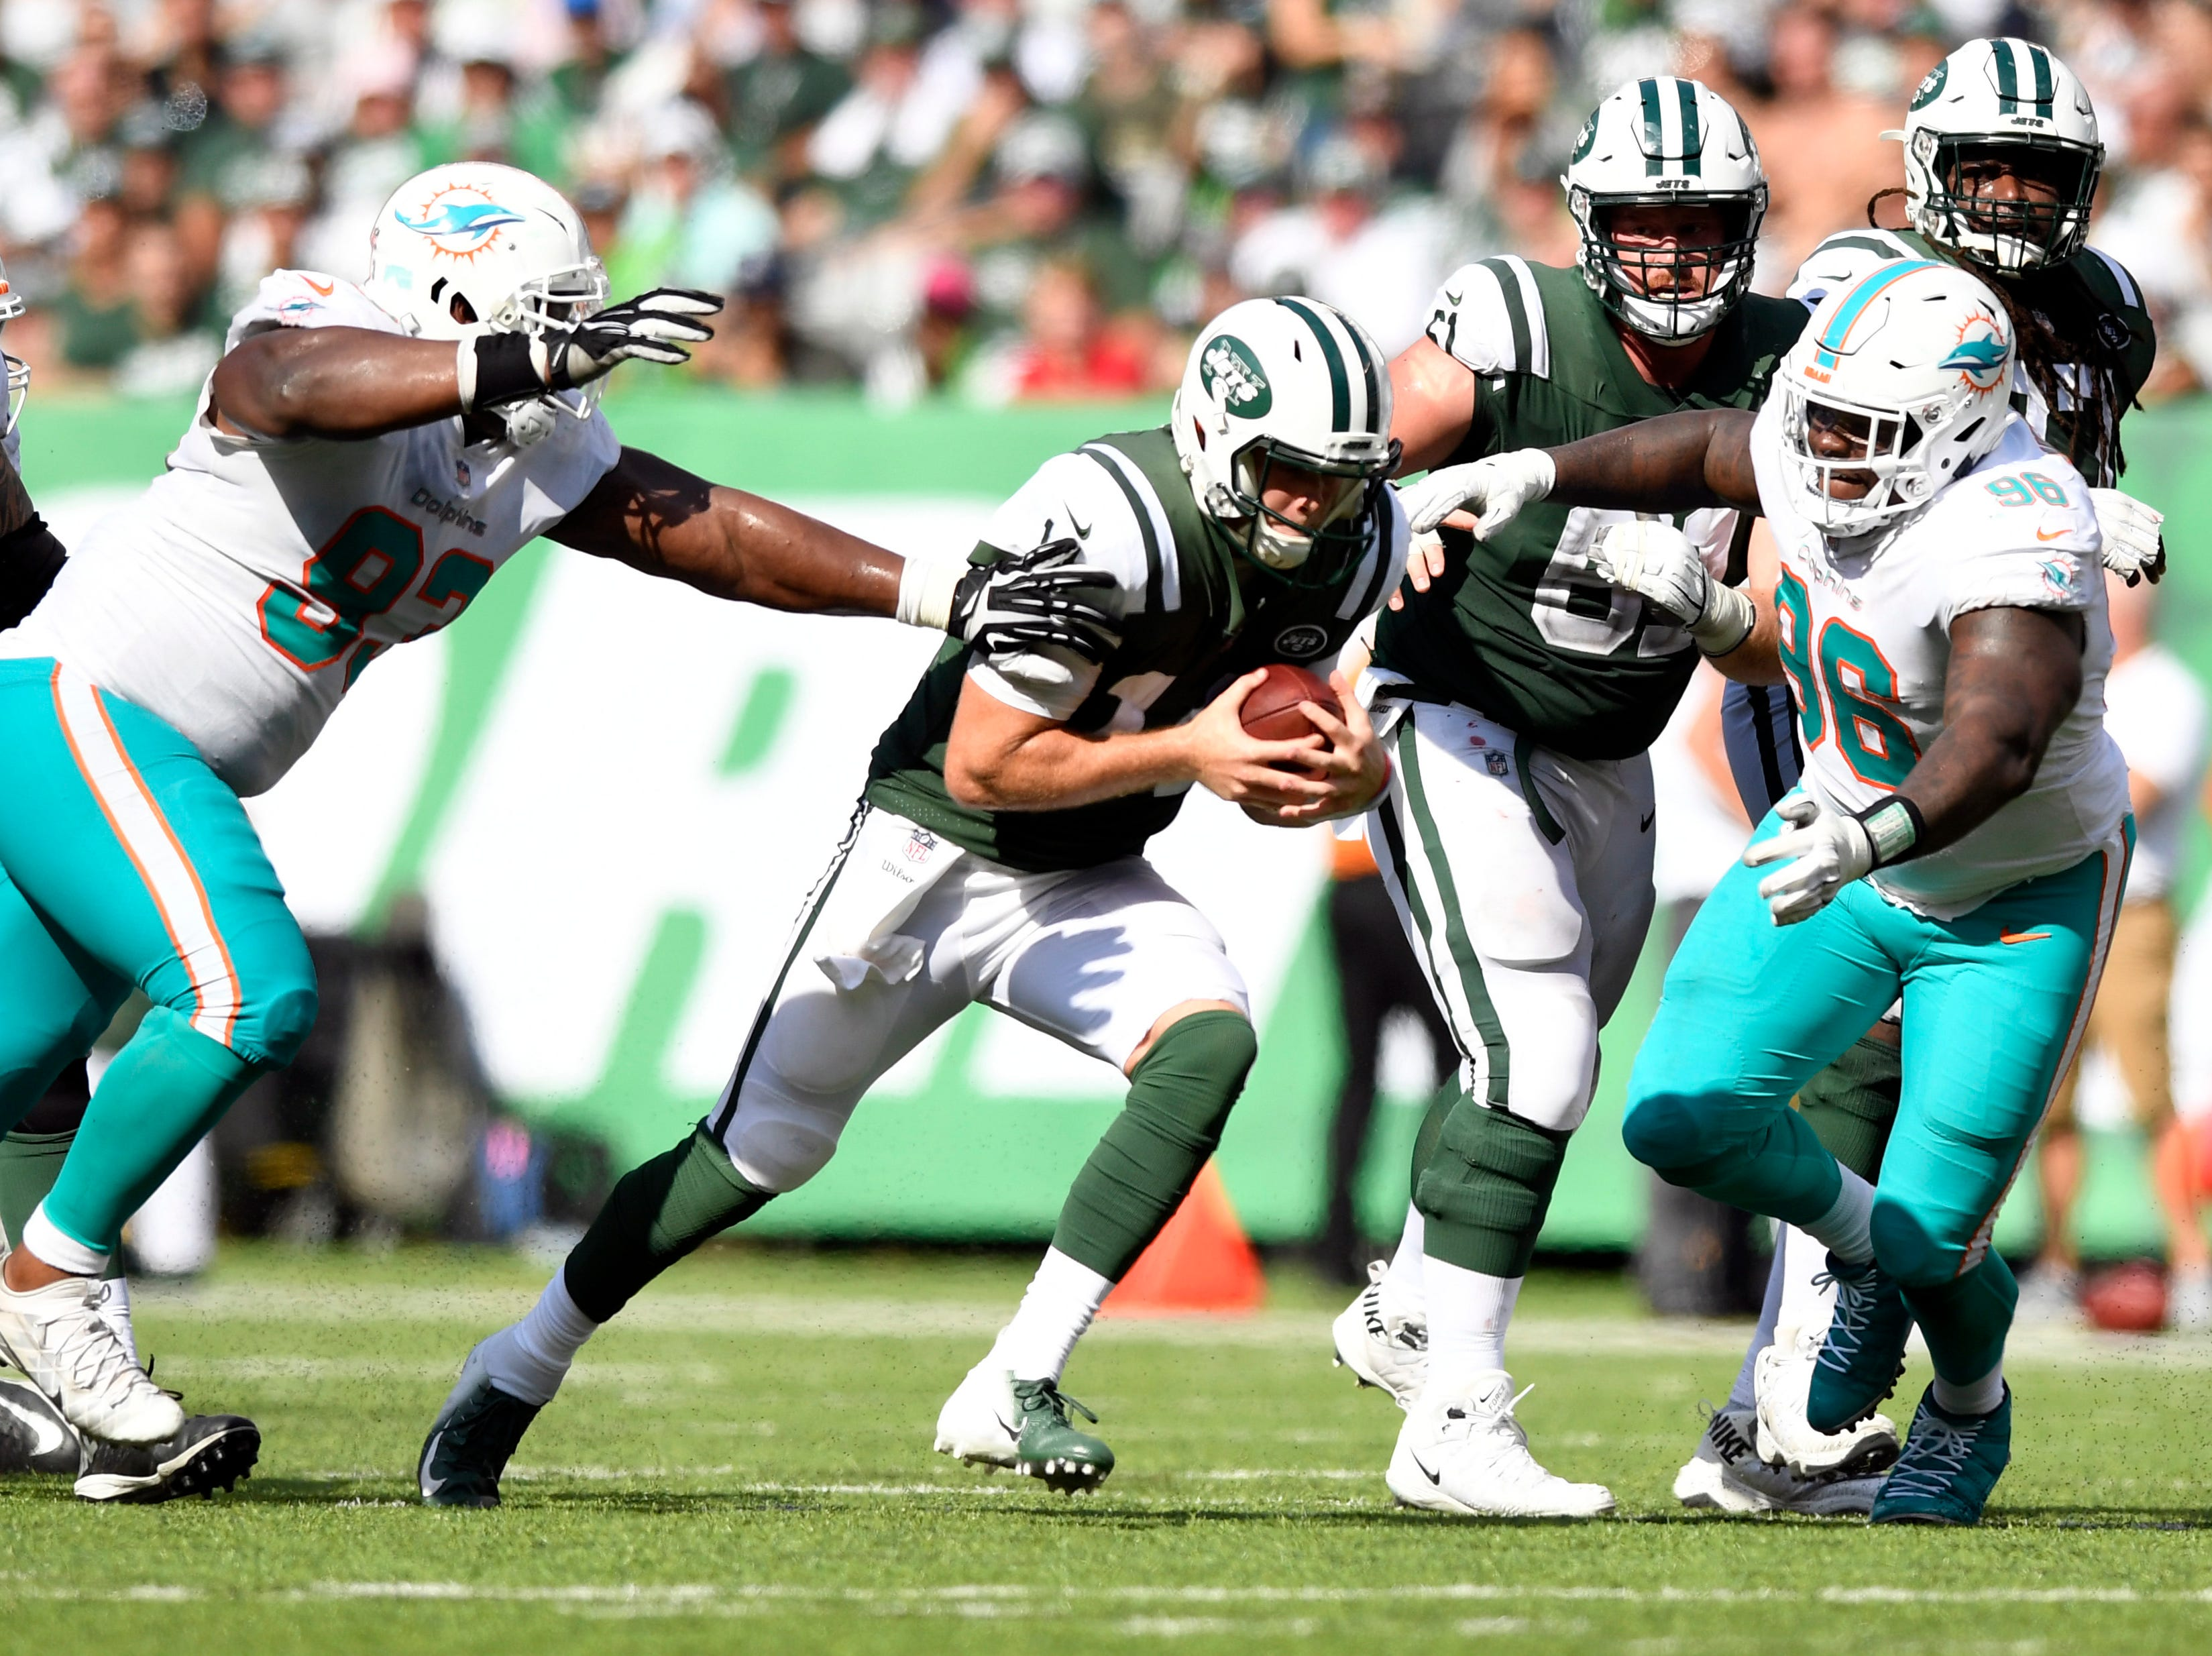 New York Jets quarterback Sam Darnold (14) rushes against the Miami Dolphins in Week 2 at MetLife Stadium in East Rutherford, NJ on Sunday, September 16, 2018.